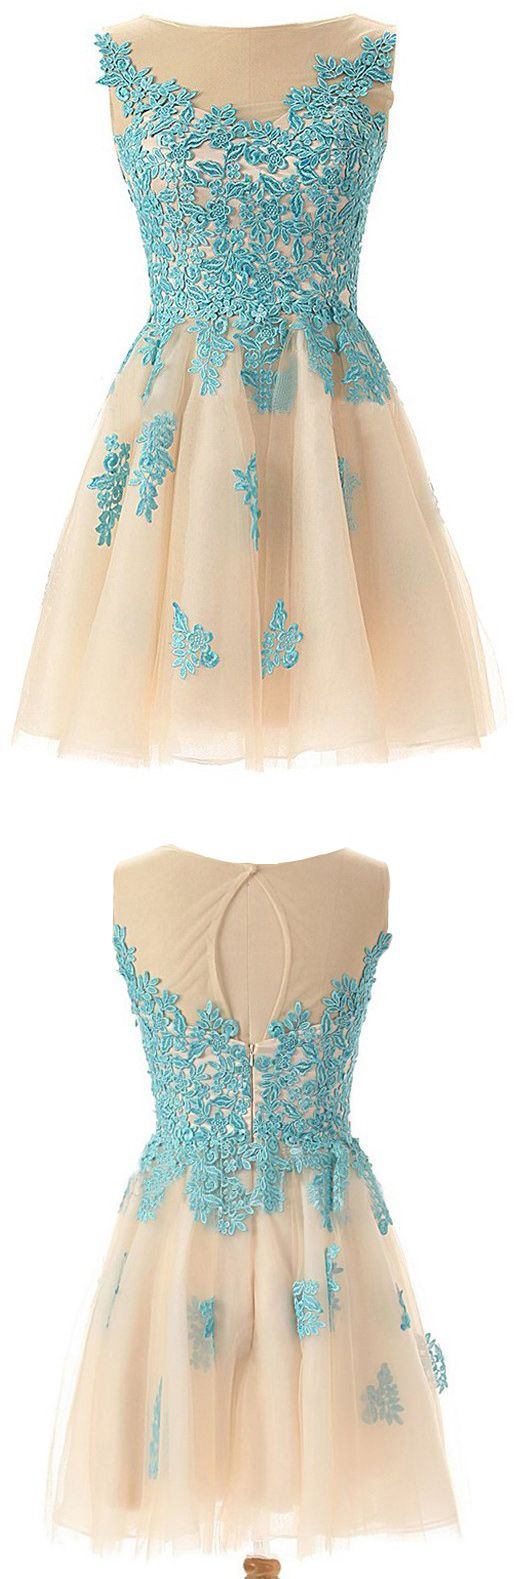 champagne homecoming dresses , Vintage homecoming dresses, homecoming dresses with blue appliques, Homecoming dresses 2016. 2016 homecoming dresses, vintage cocktail dresses, vintage dresses for homecoming